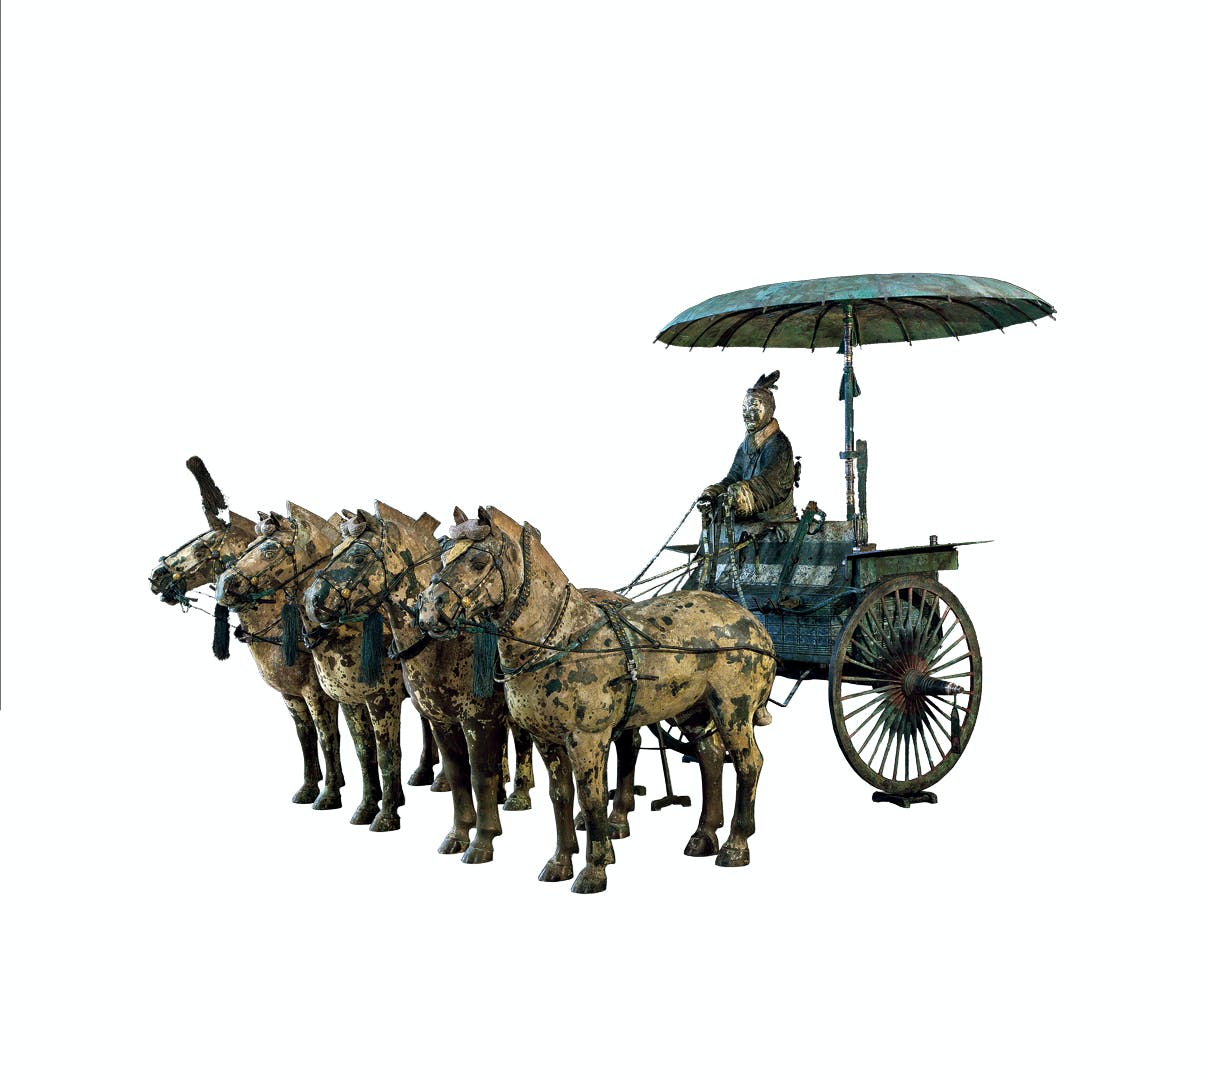 Modern replicas of Chariot models from the Qin dynasty (221–206 BC). Photo: Courtesy The Metropolitan Museum of Art